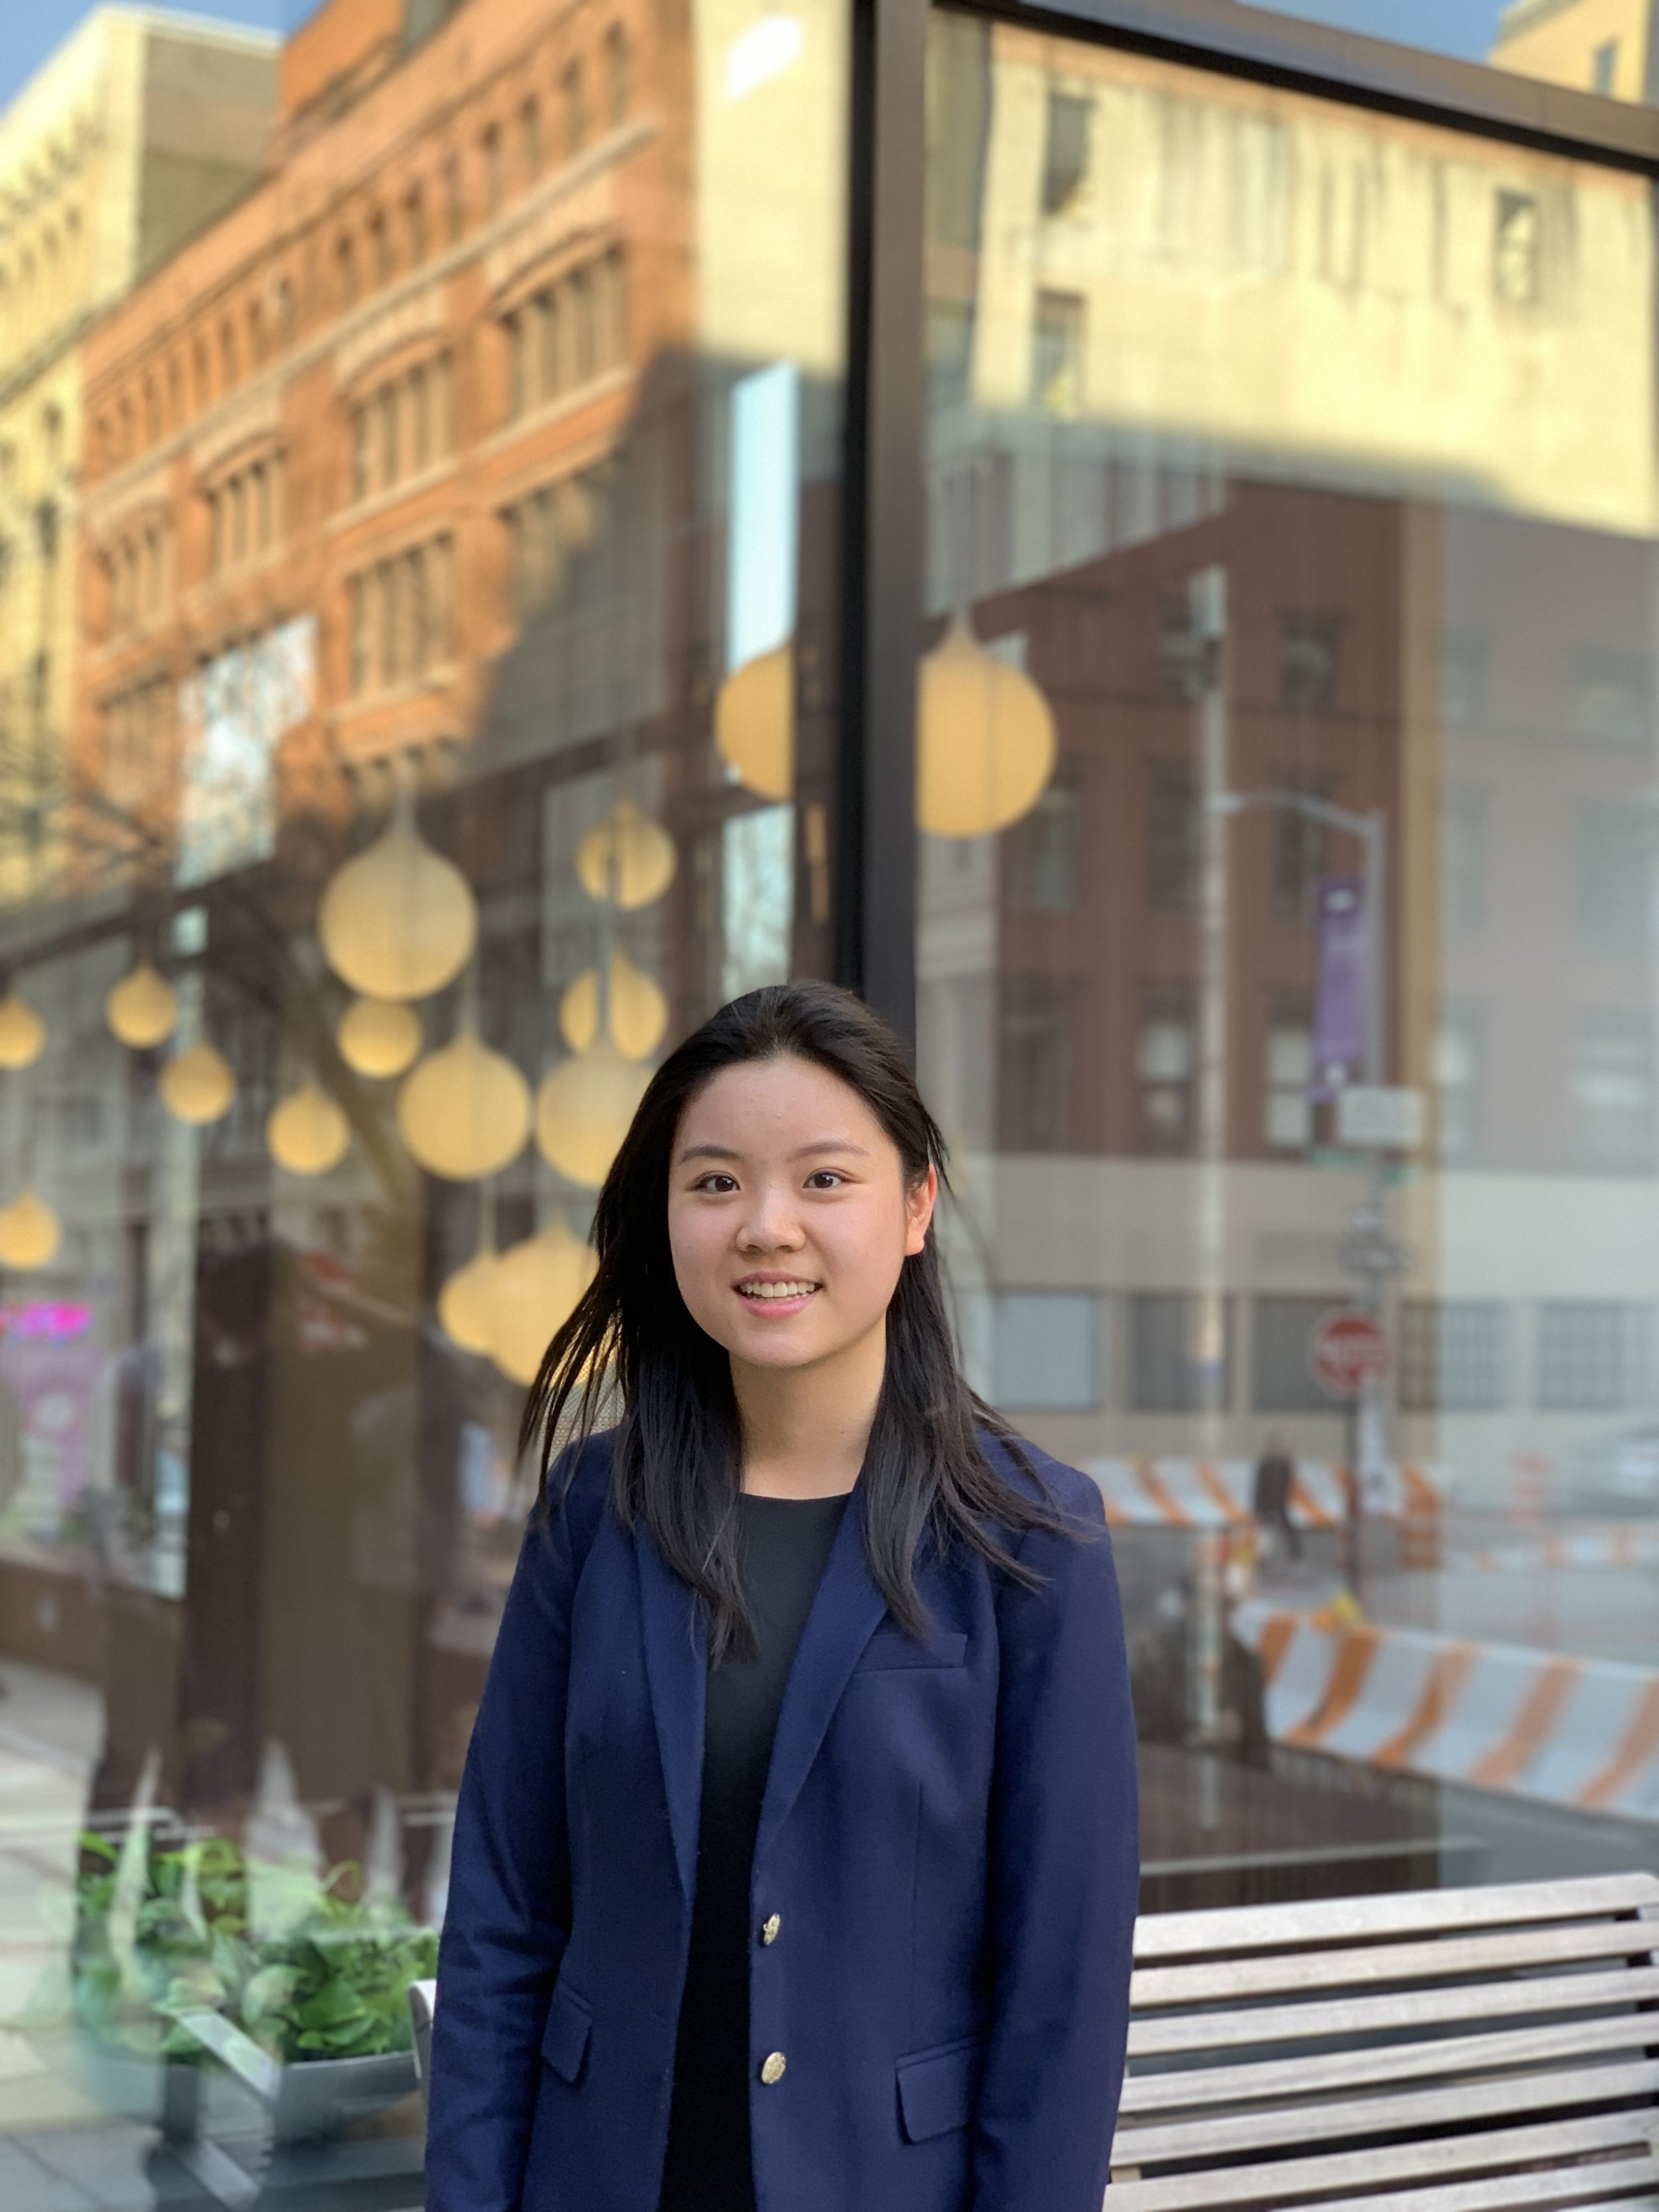 Katherine Lin    Long Short Analyst   Katherine is a junior from Cary, North Carolina majoring in finance and data science. In her free time, she enjoys going on food adventures around the city, hanging out with friends, and playing volleyball.